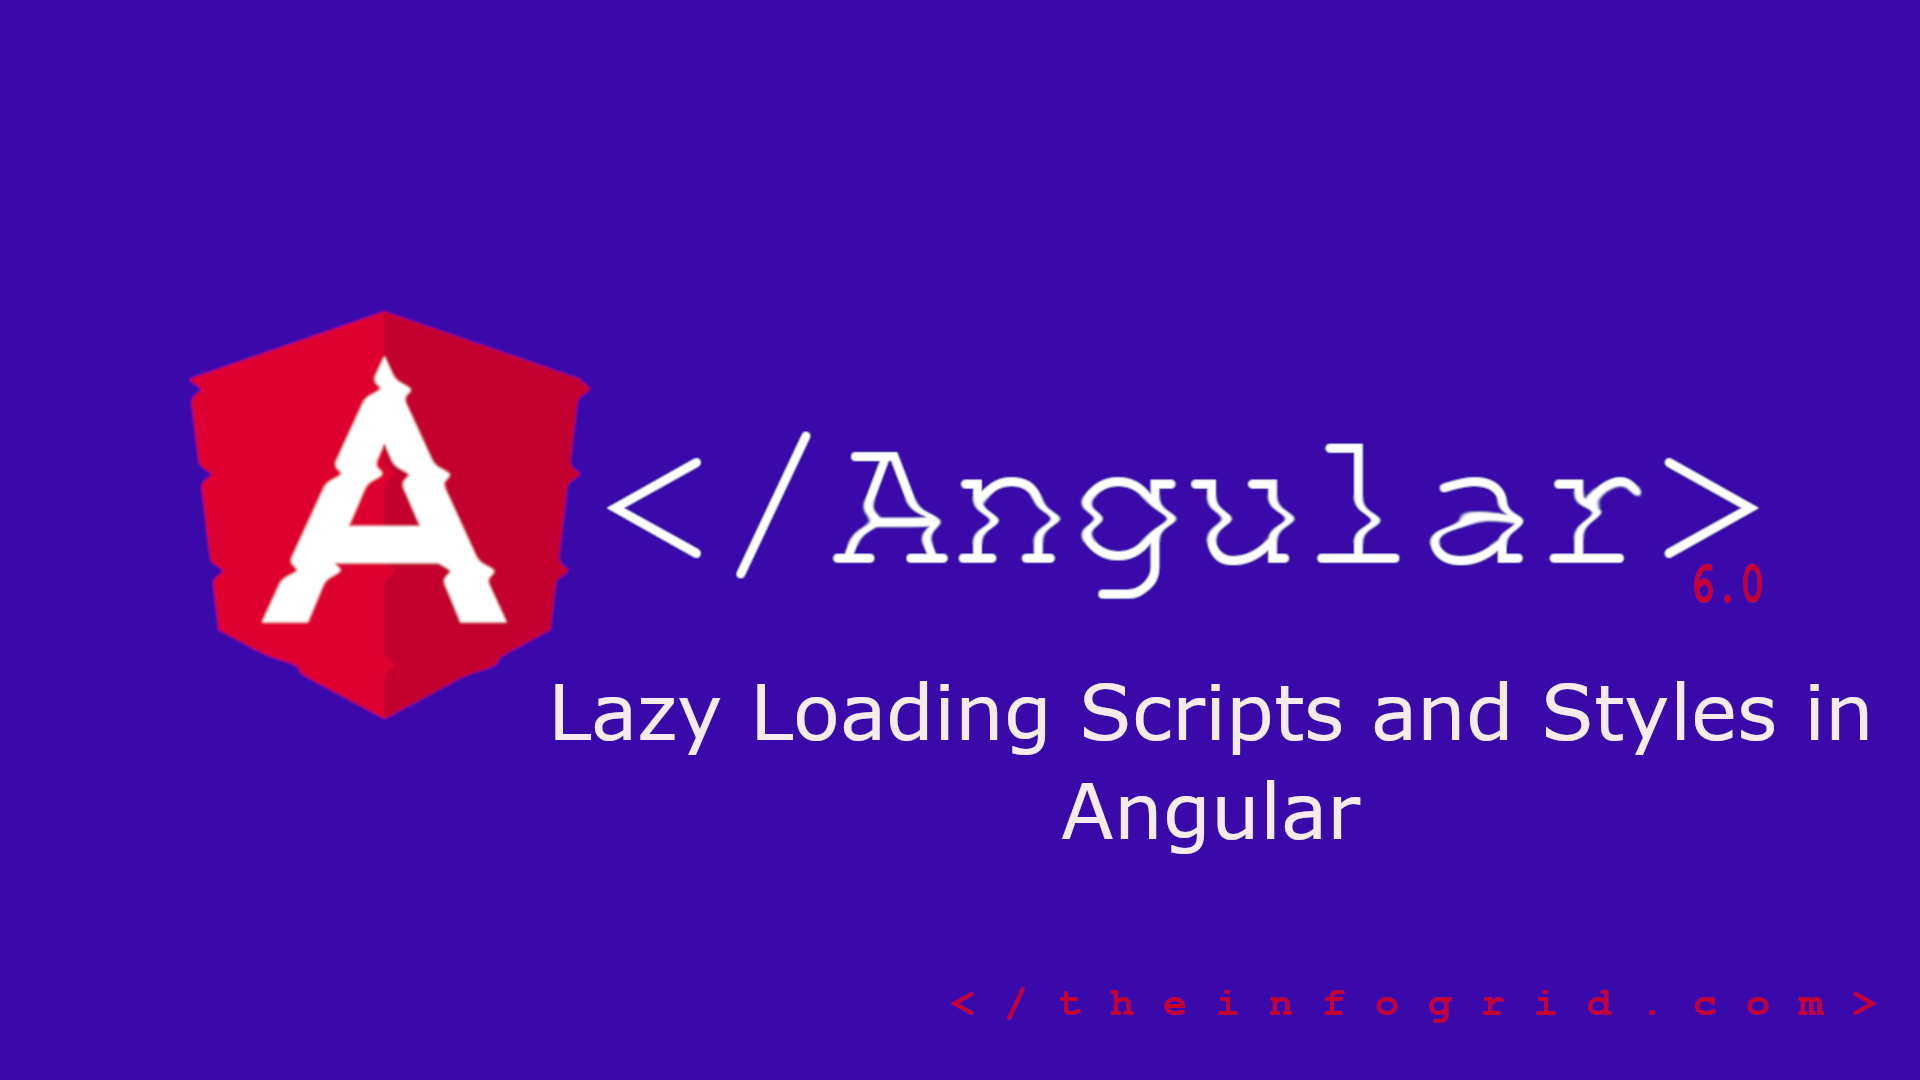 Lazy Loading Scripts and Styles in Angular